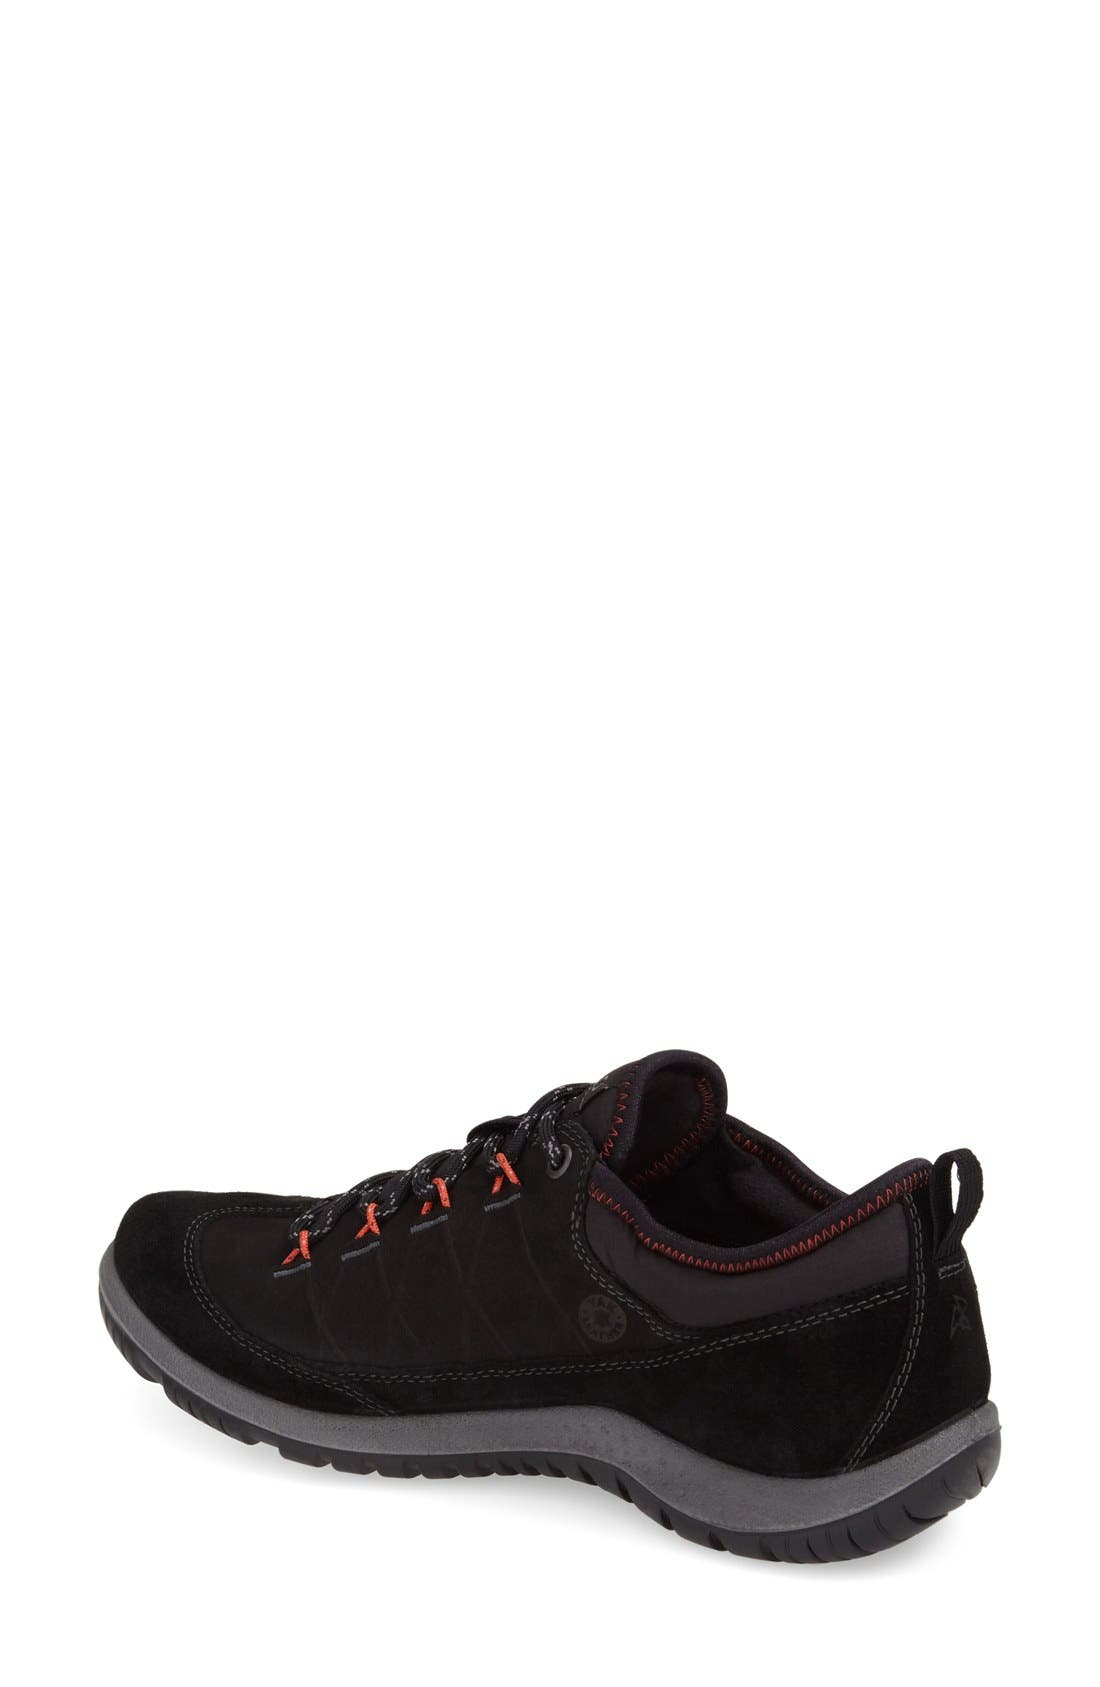 Alternate Image 2  - ECCO 'Aspina GTX' Waterproof Sneaker (Women)